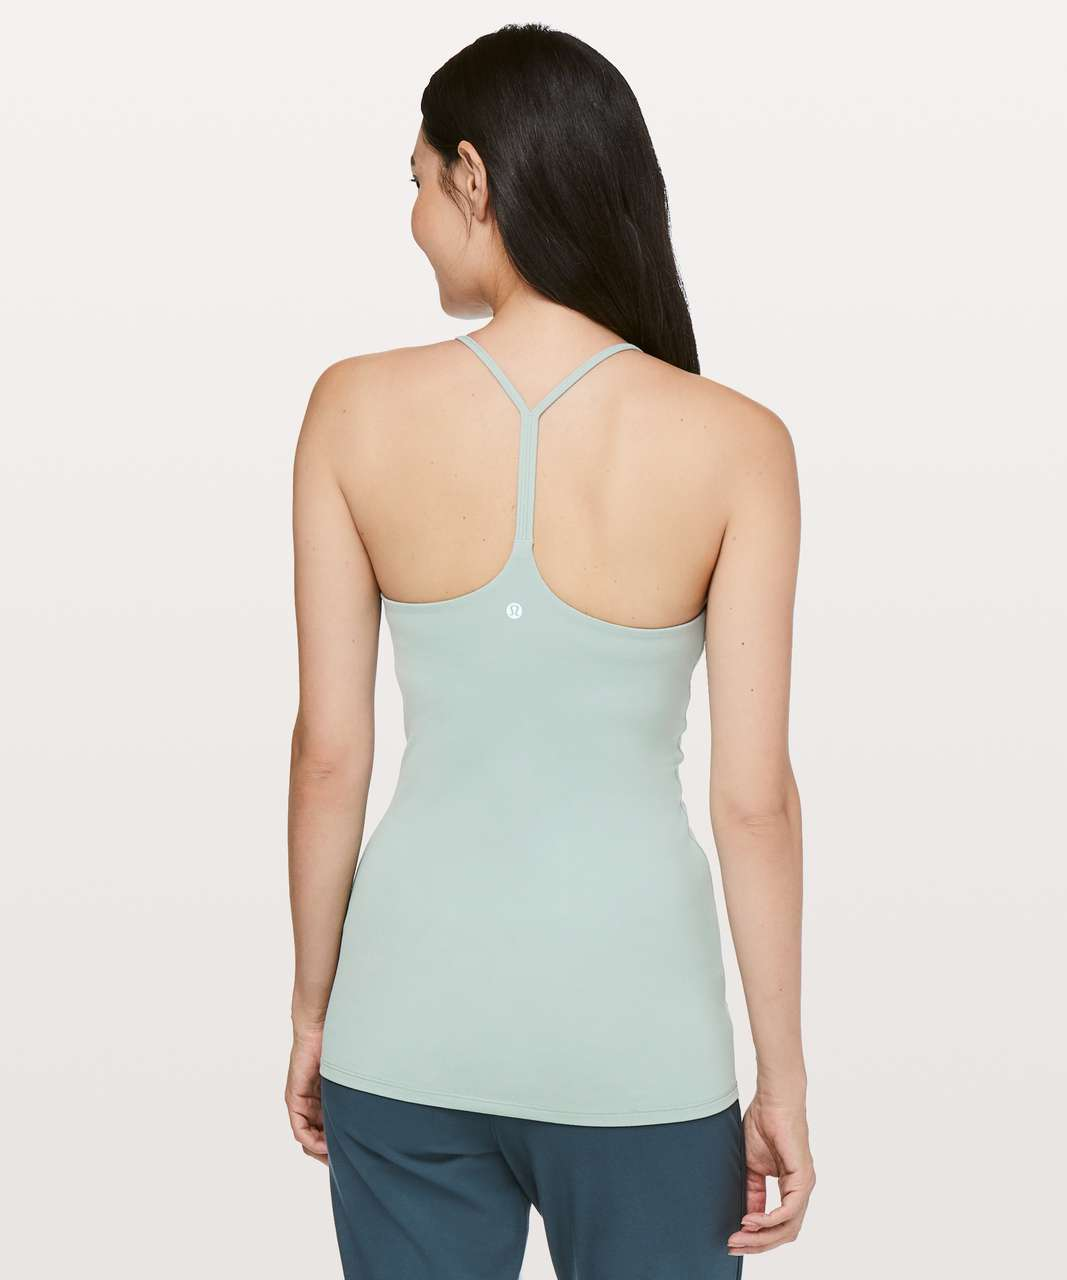 Lululemon Sun Setter Tank *Light Luon - Misty Moss